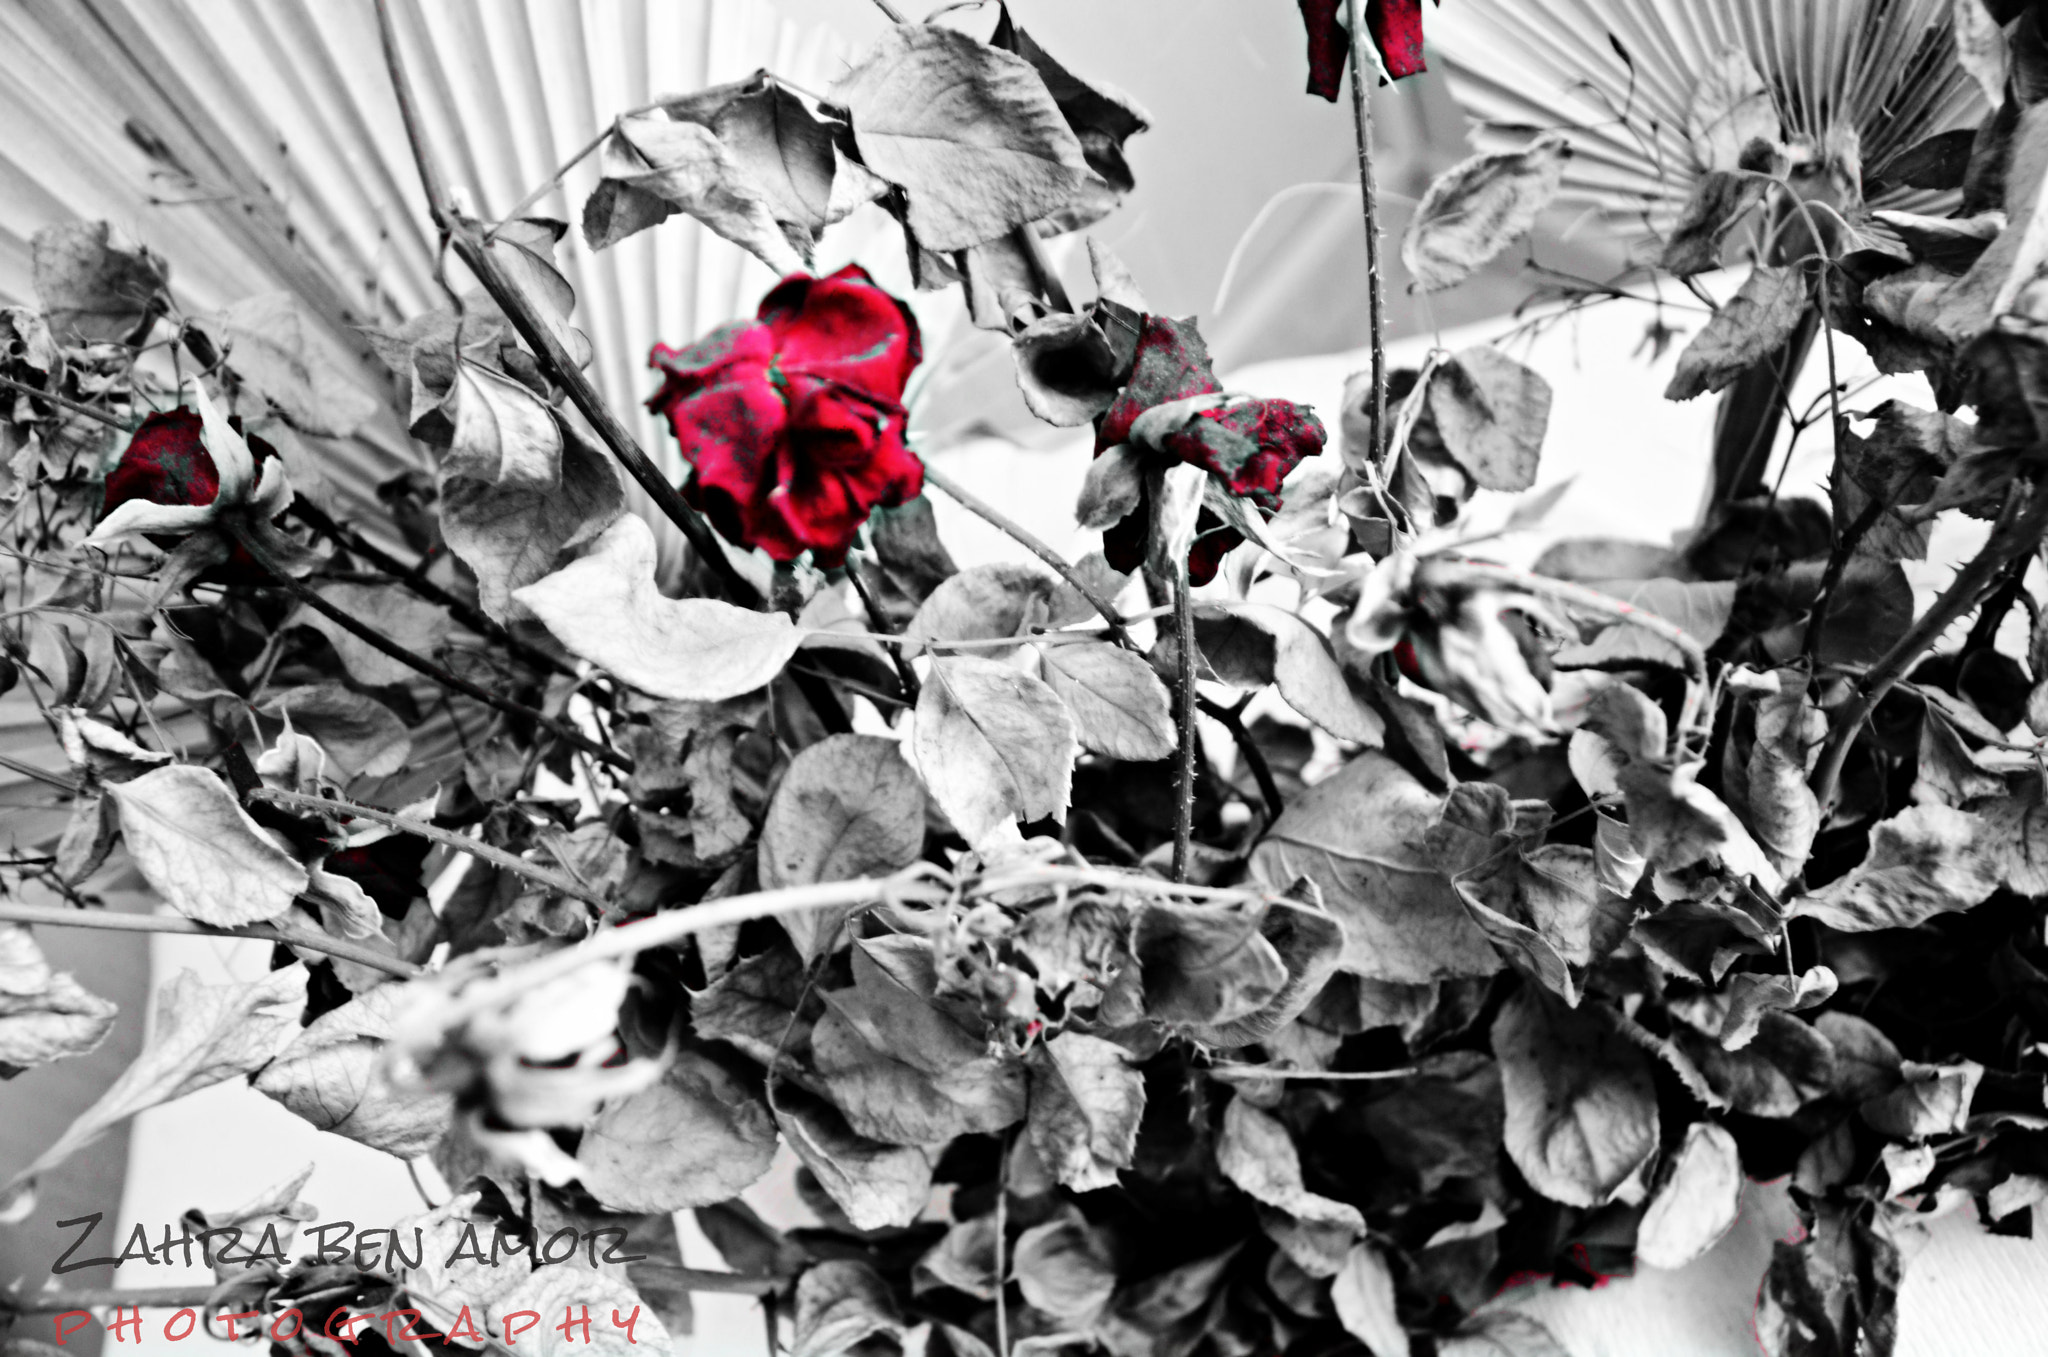 Photograph roses by zahra ben amor on 500px